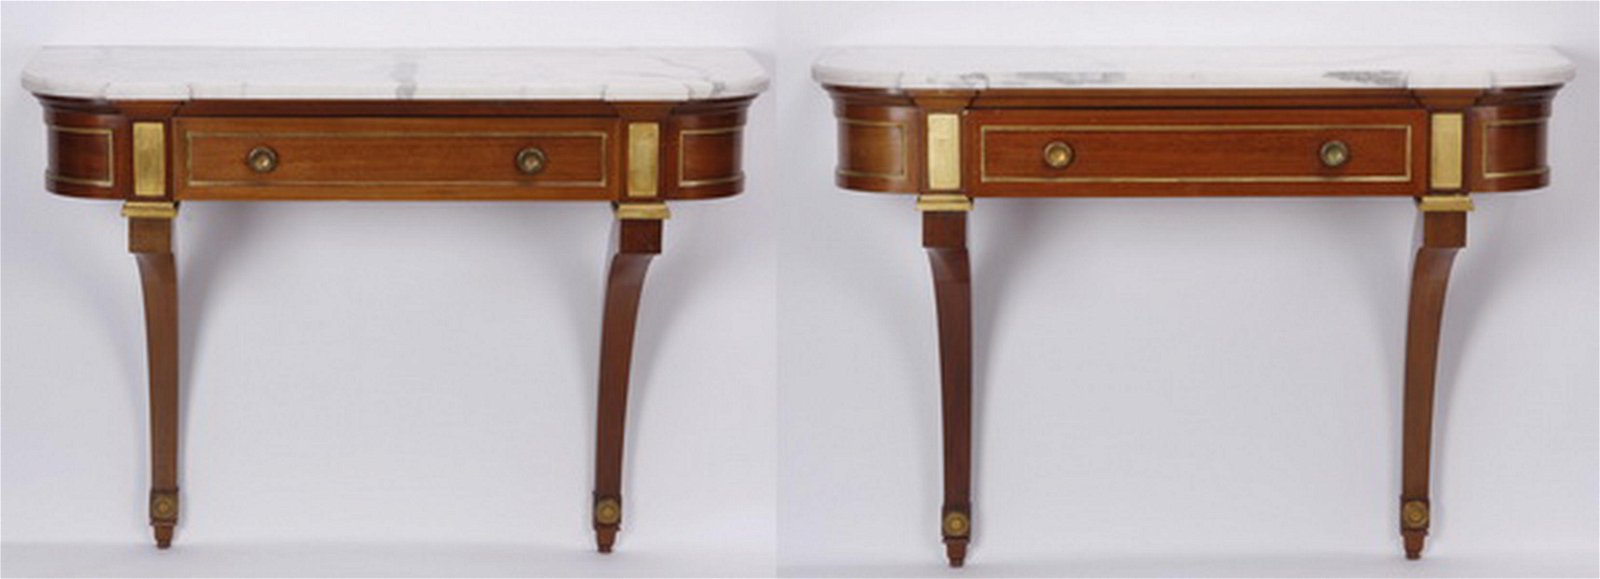 (2) Mid 20th c.Maison Jansen marble top wall consoles